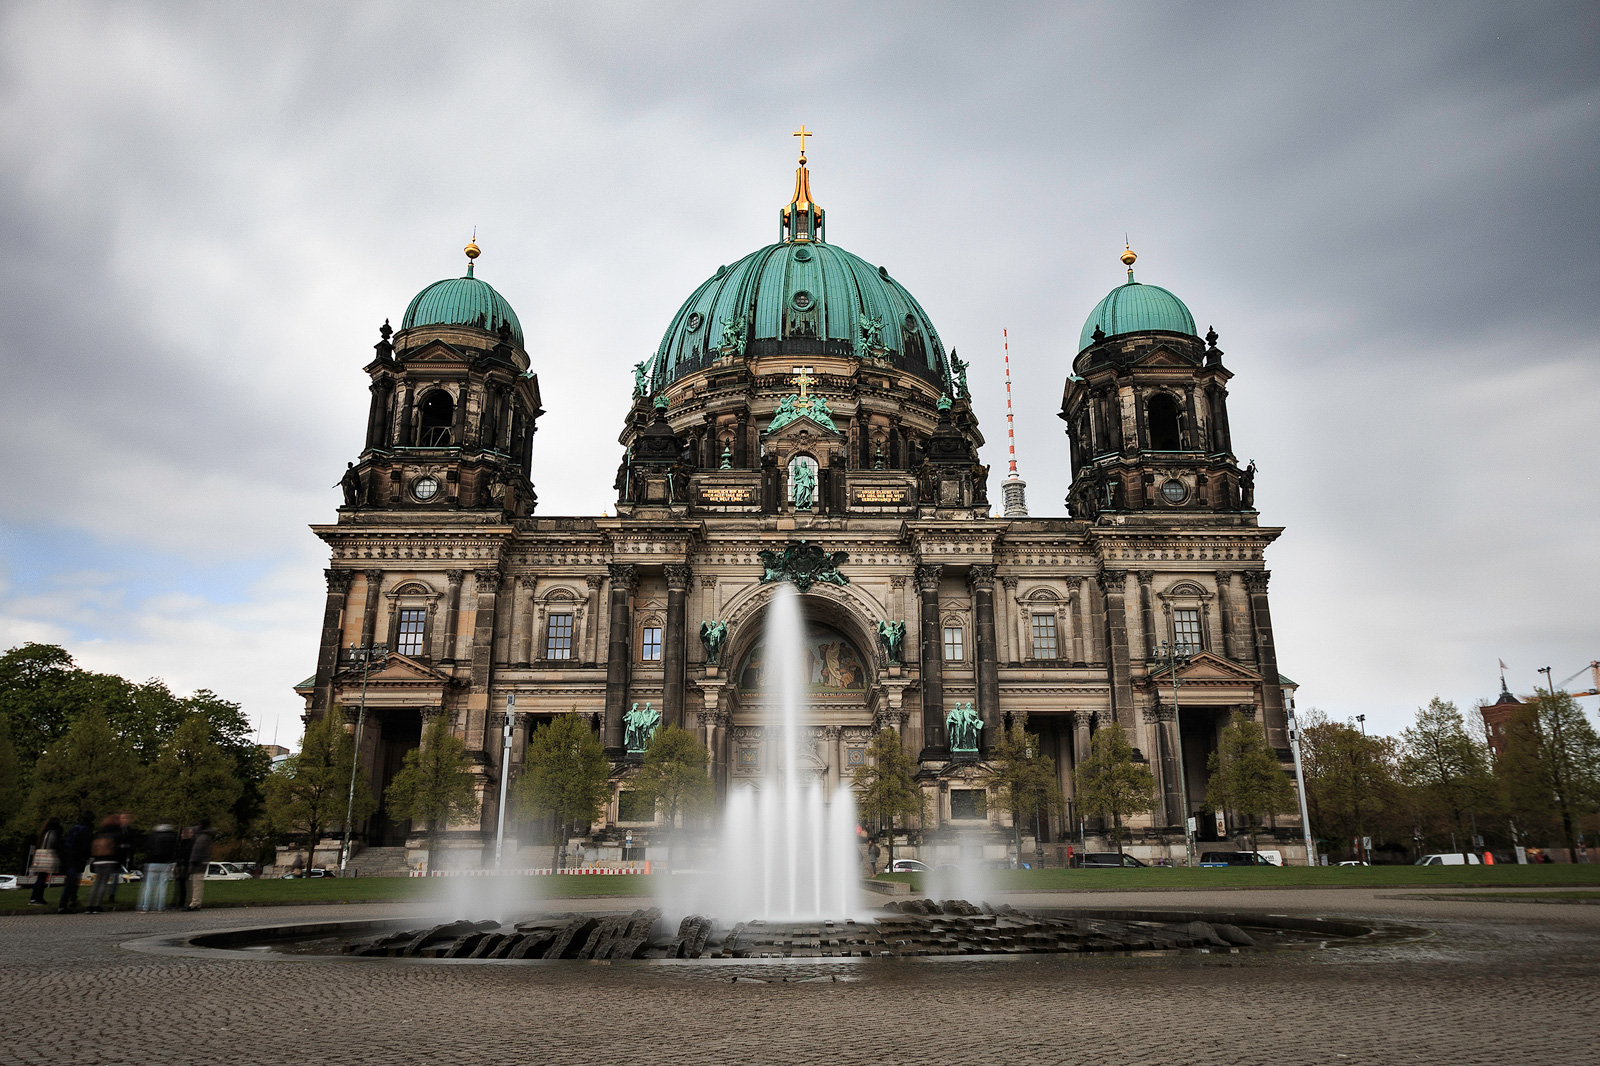 Fotospot Berliner Dom, Berlin, kathrinsworld, Kathrin's World